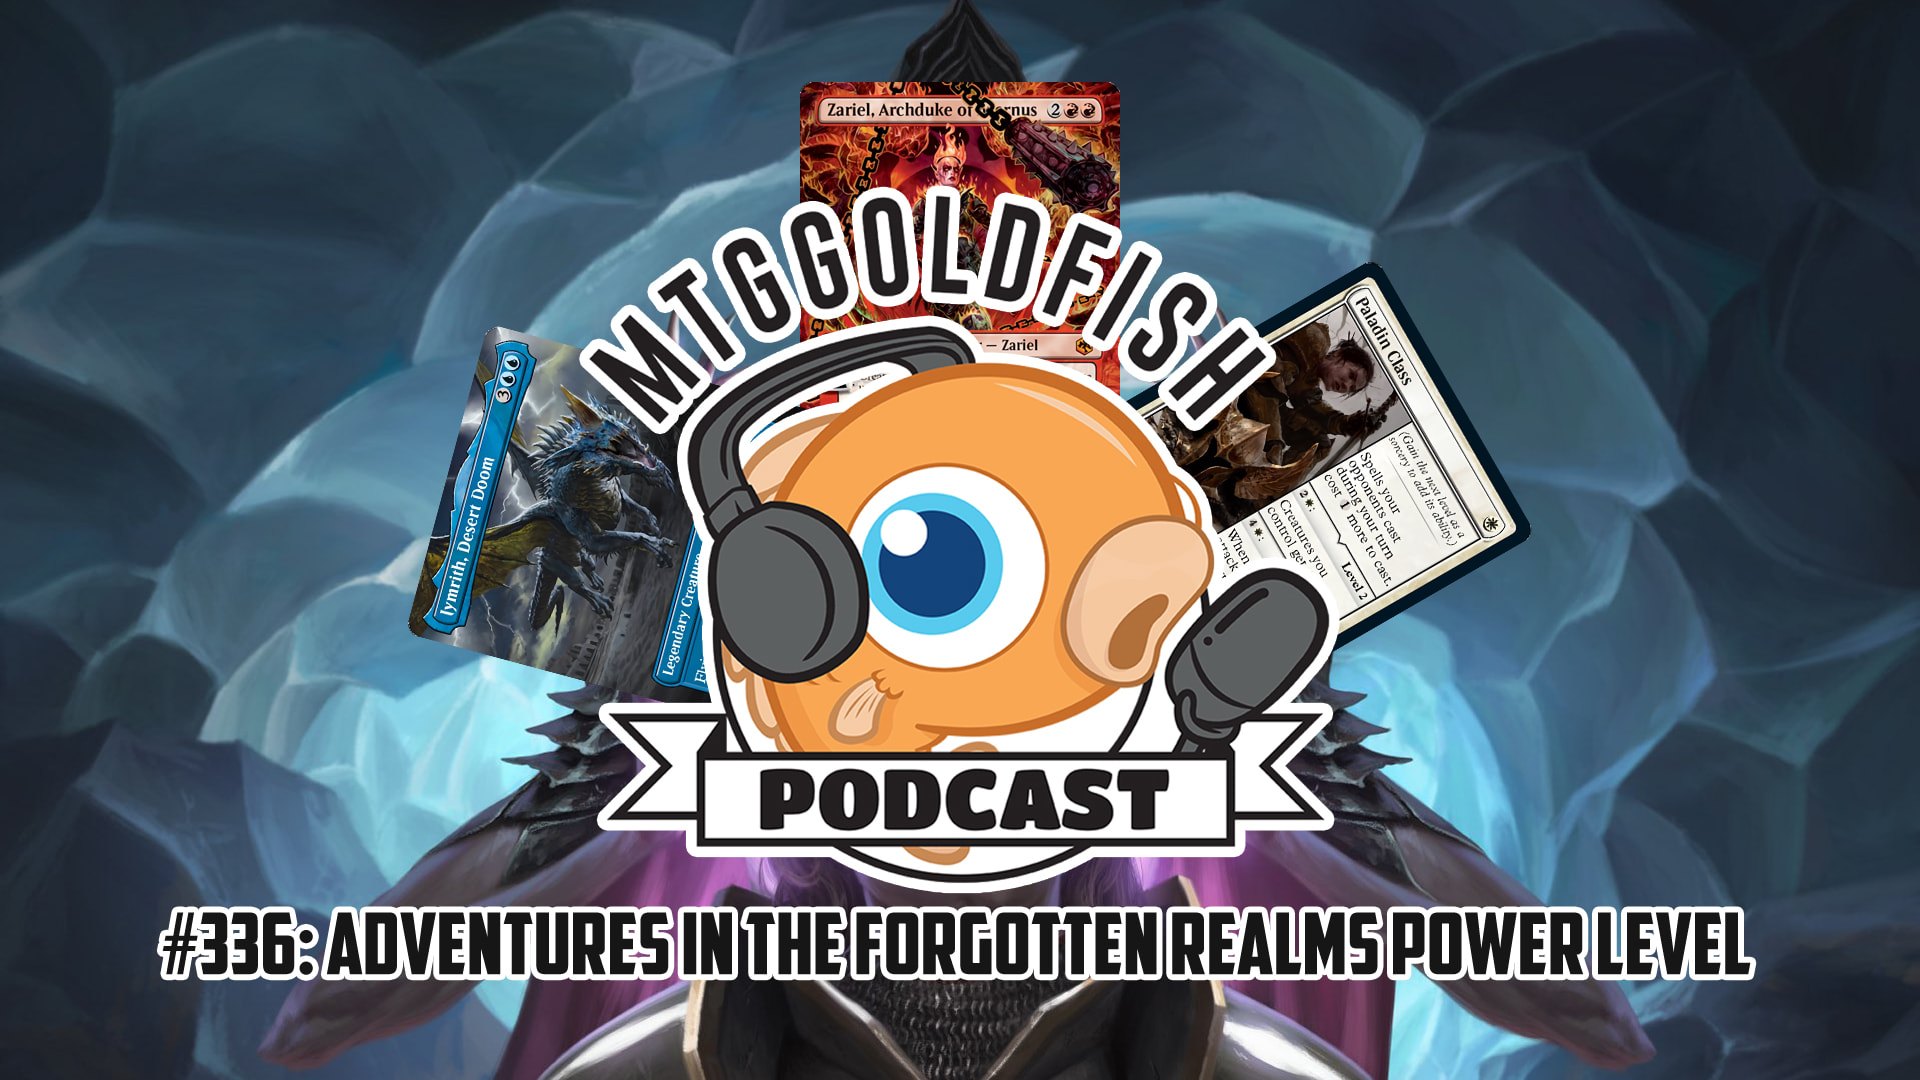 Image for Podcast 336: Adventures in the Forgotten Realms Power Level